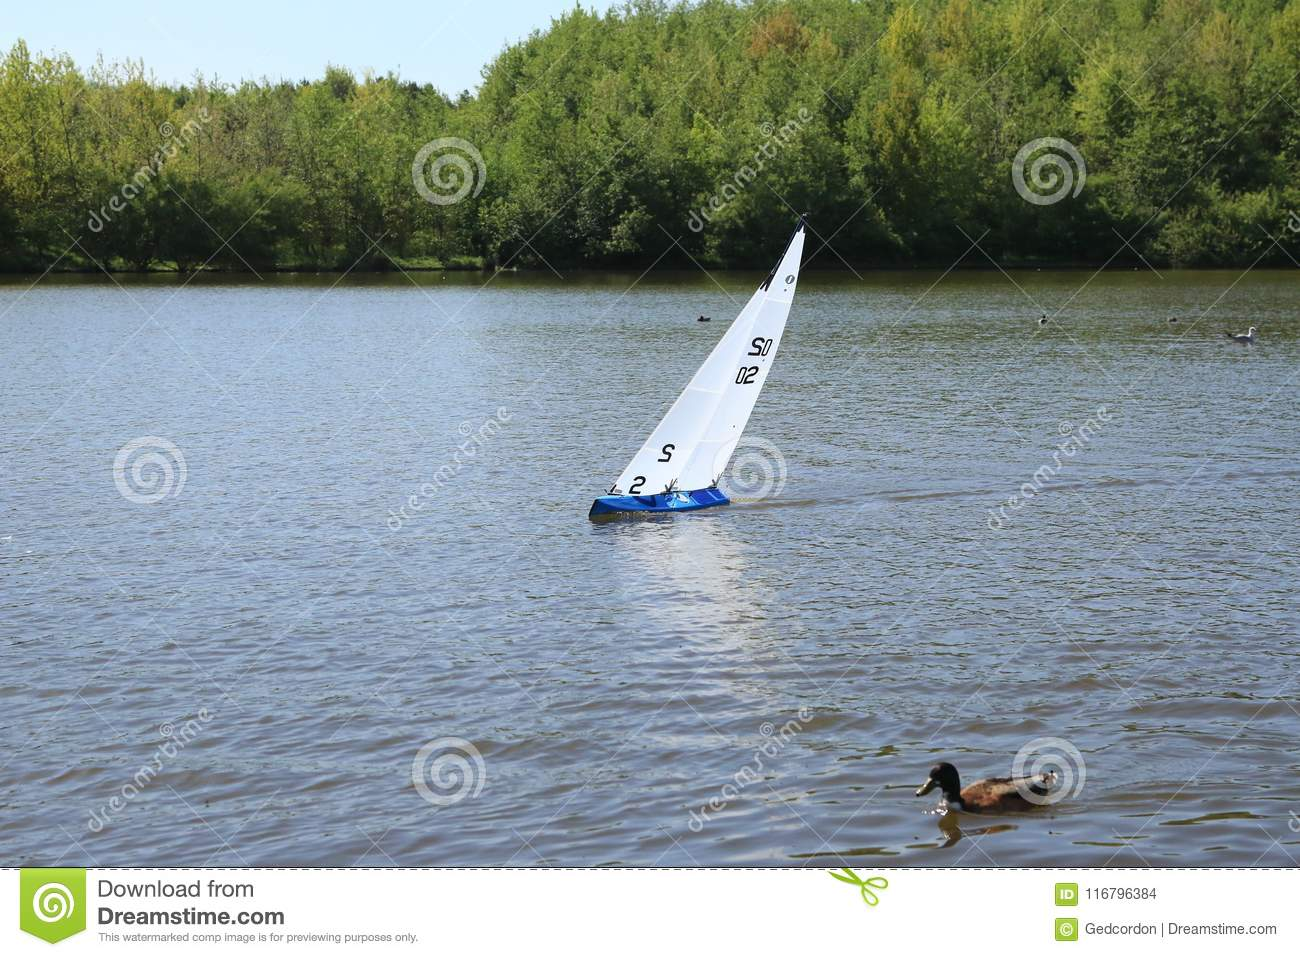 Model Yacht Racing Next To Duck  Stock Photo - Image of large, yacht